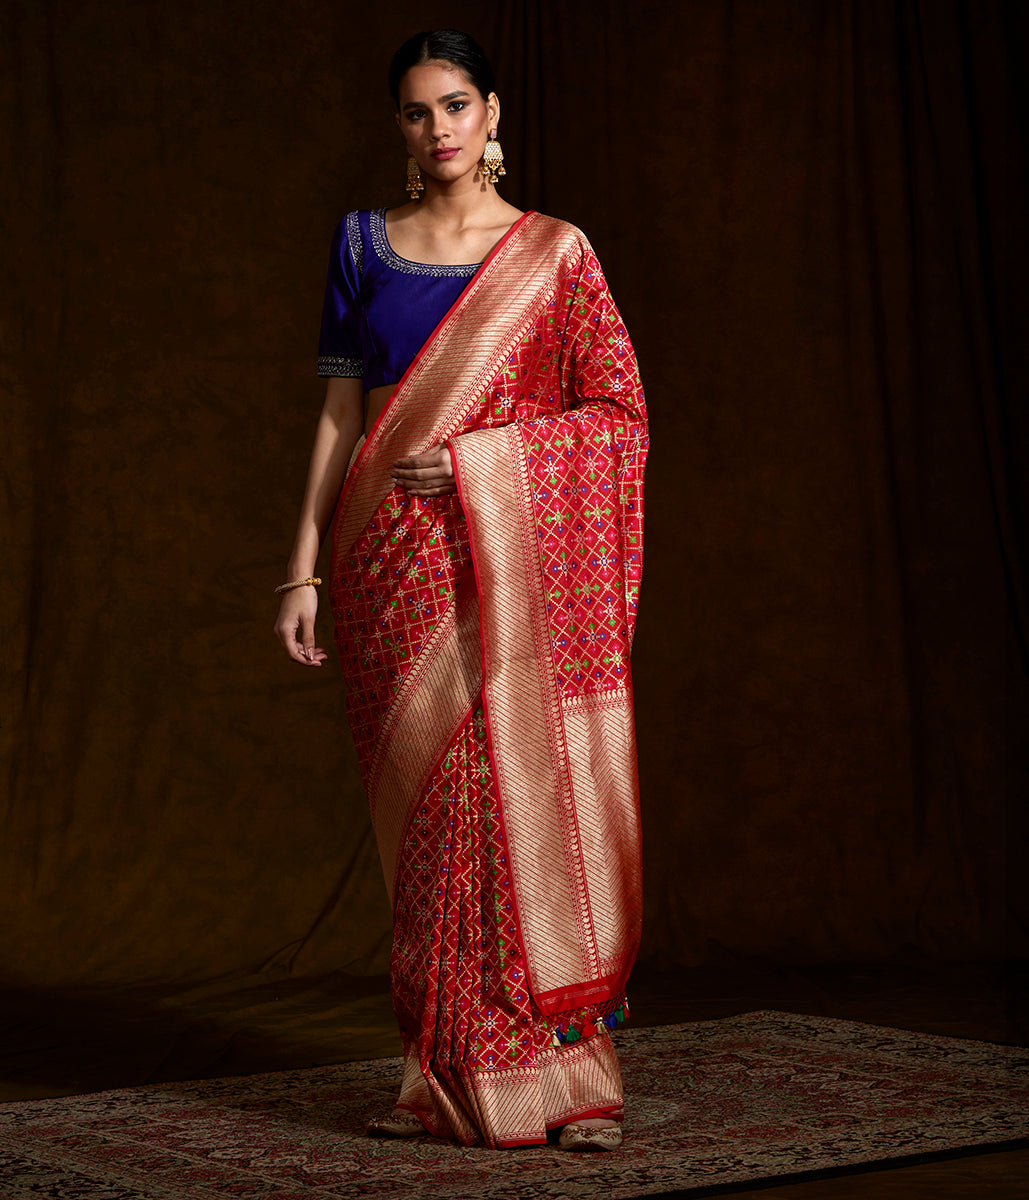 Red meenakari patola saree woven in fine katan silk